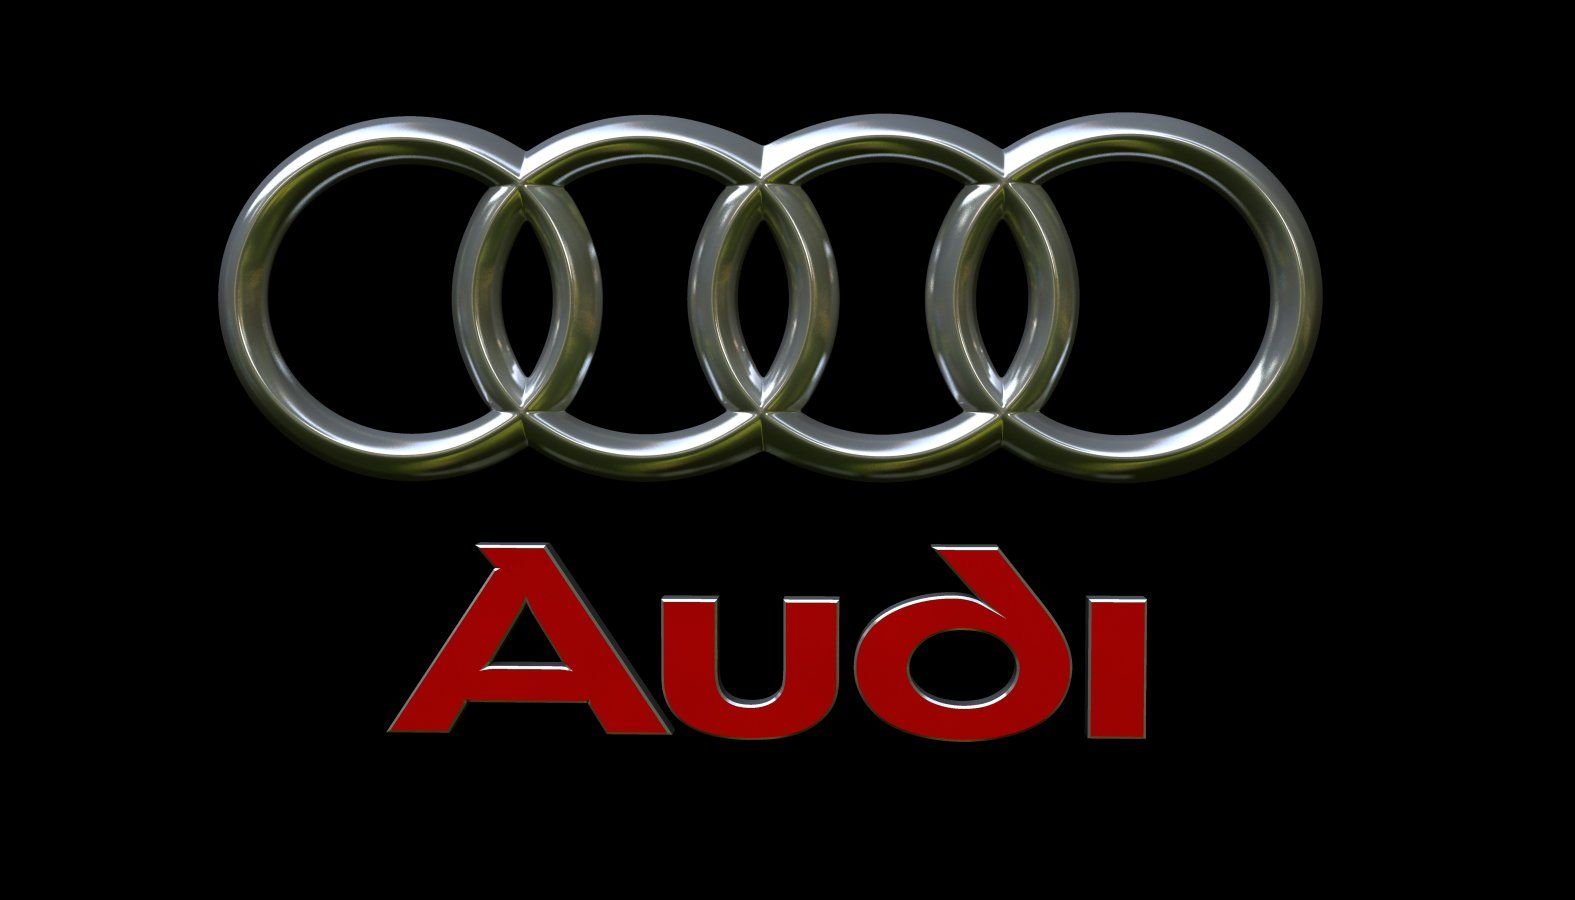 How To Pronounce Audi >> You can download Audi Black Logo Hd Wallpapers here.Audi Black Logo Hd Wallpapers In High ...